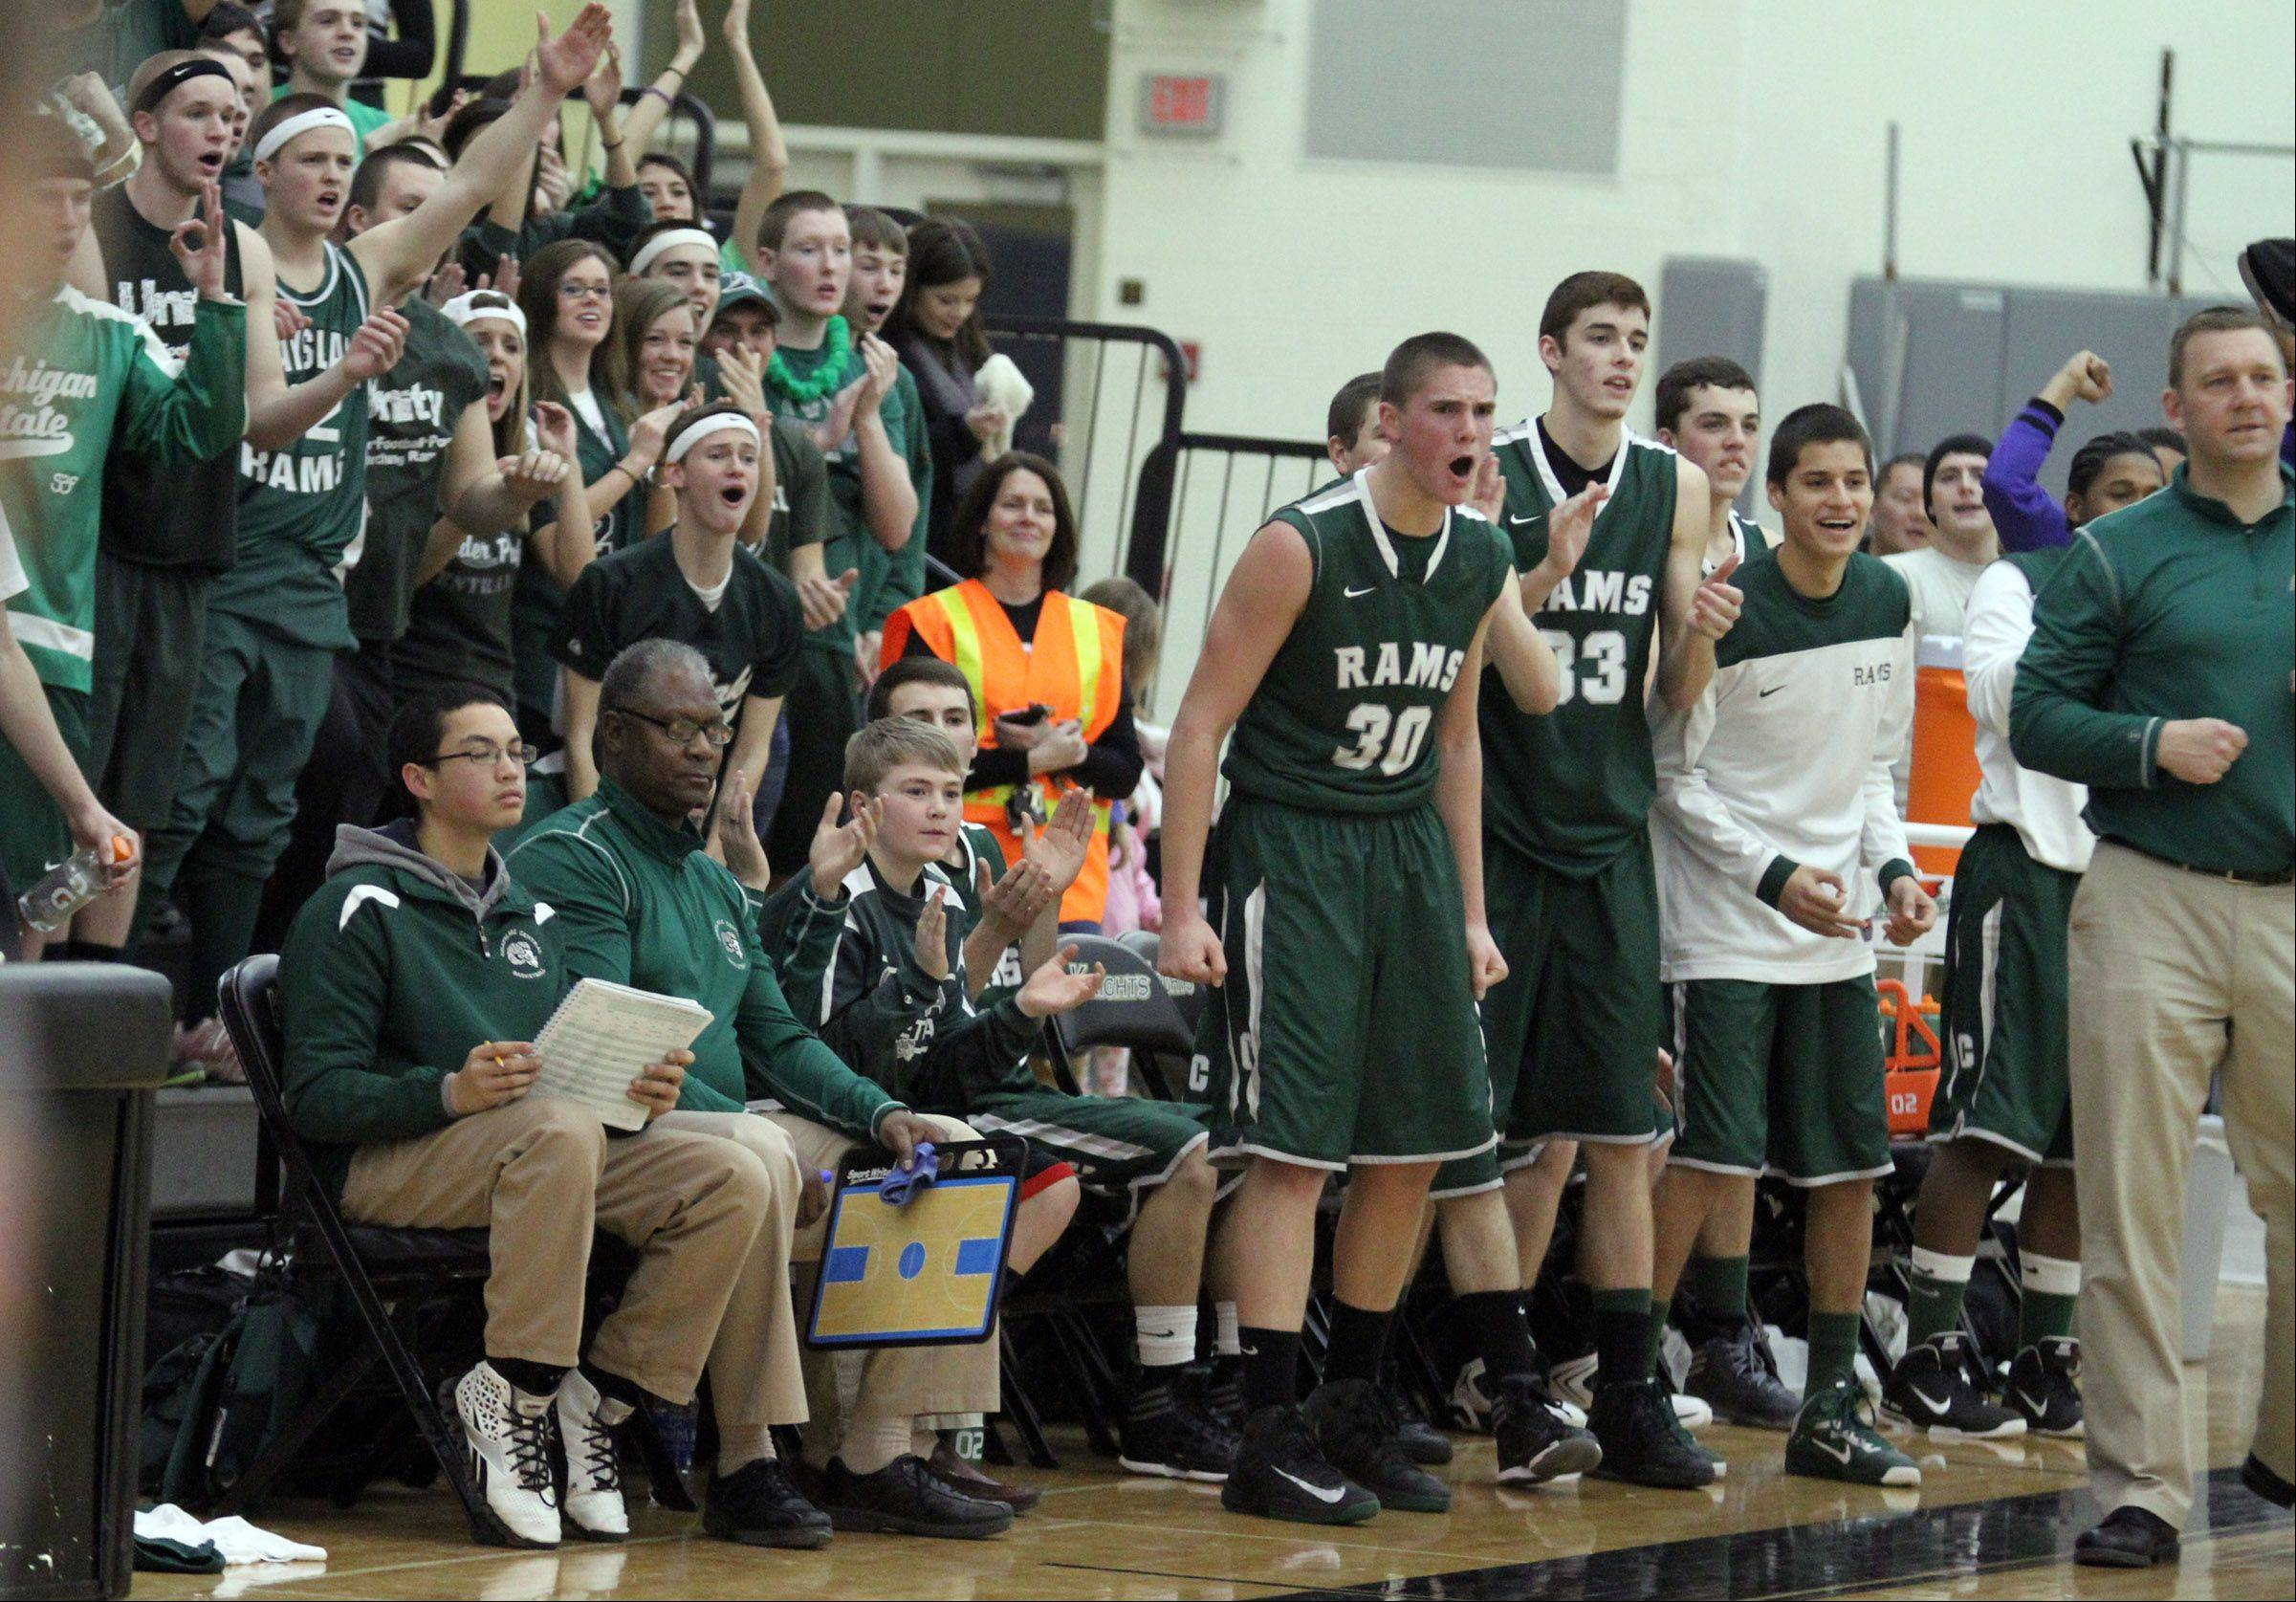 Images: Grayslake Central vs. Grayslake North, boys basketball